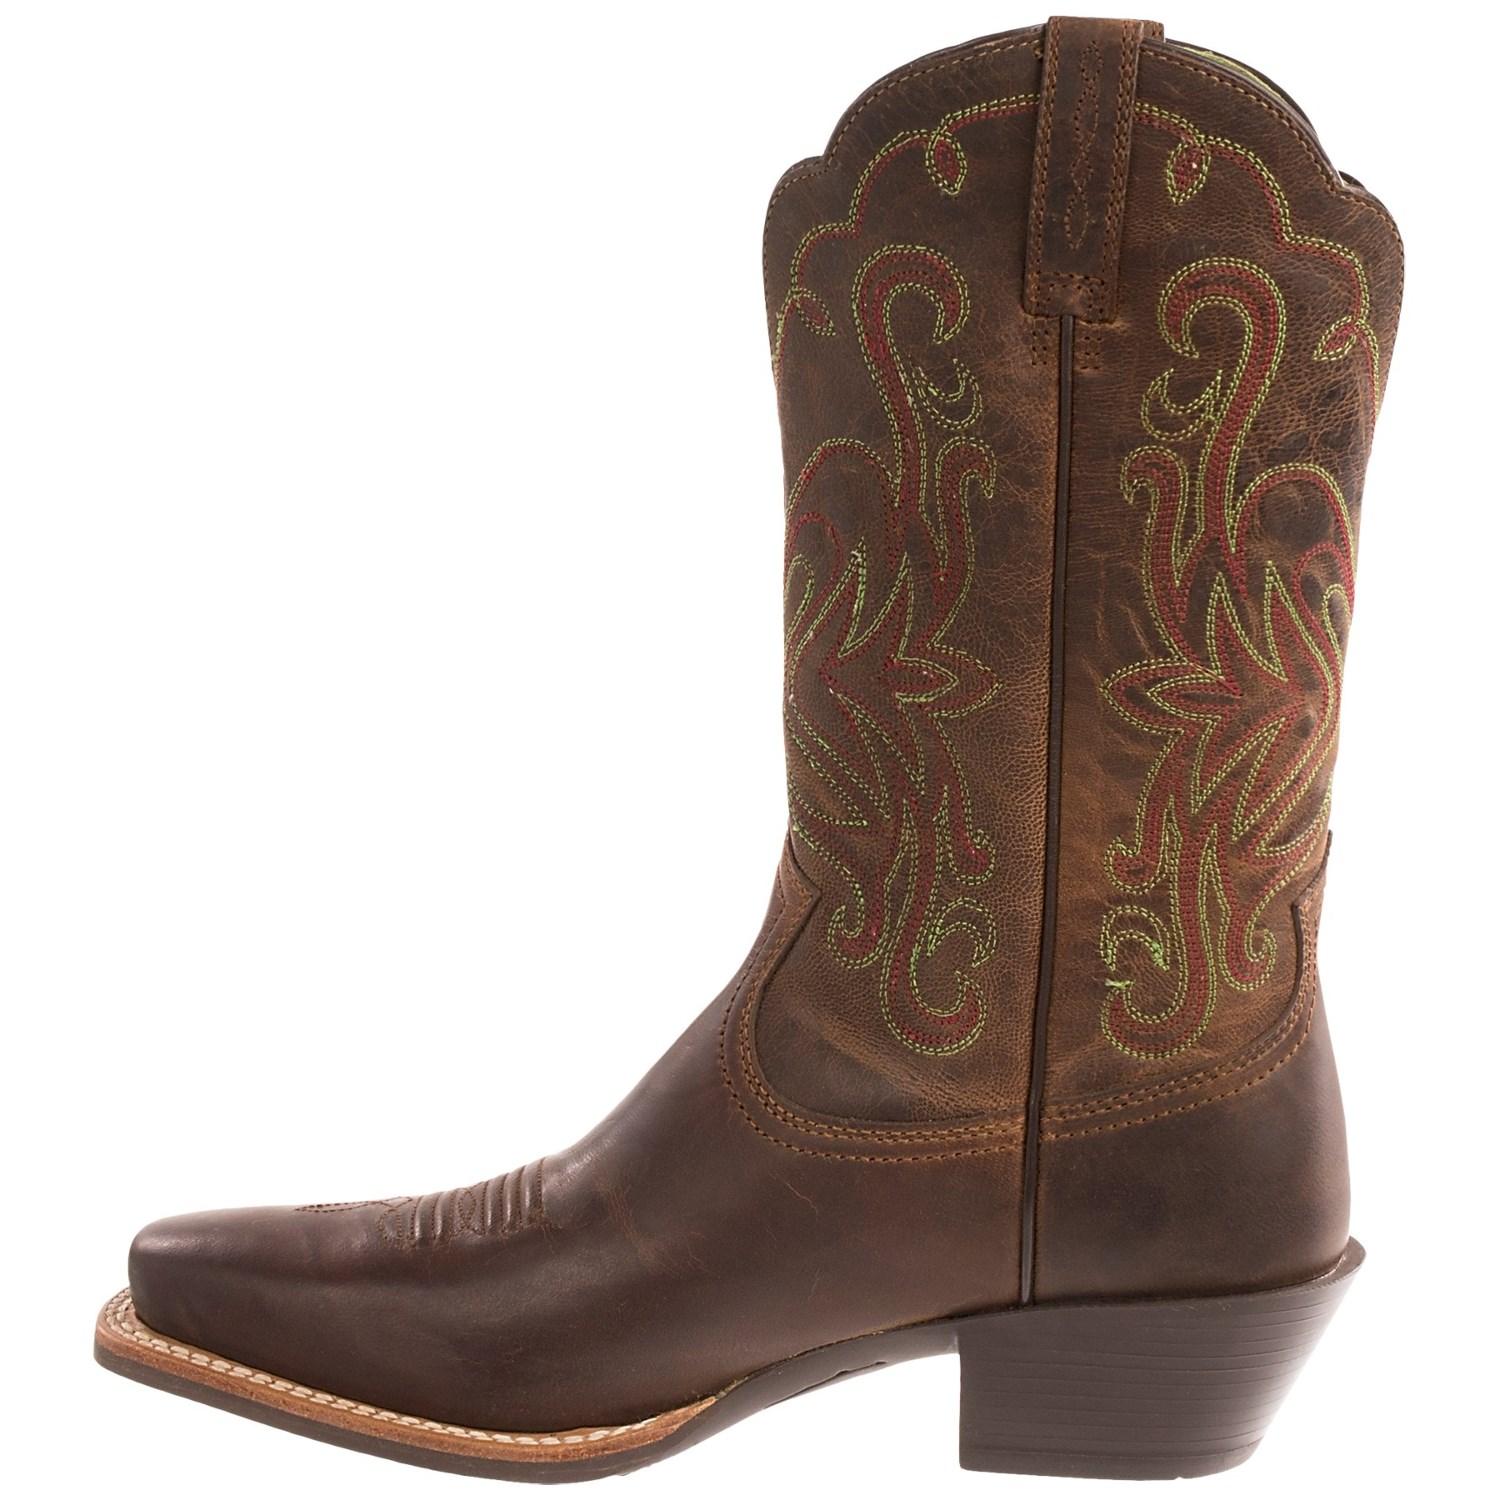 Ariat Legend 11 Cowboy Boots For Women Save 60